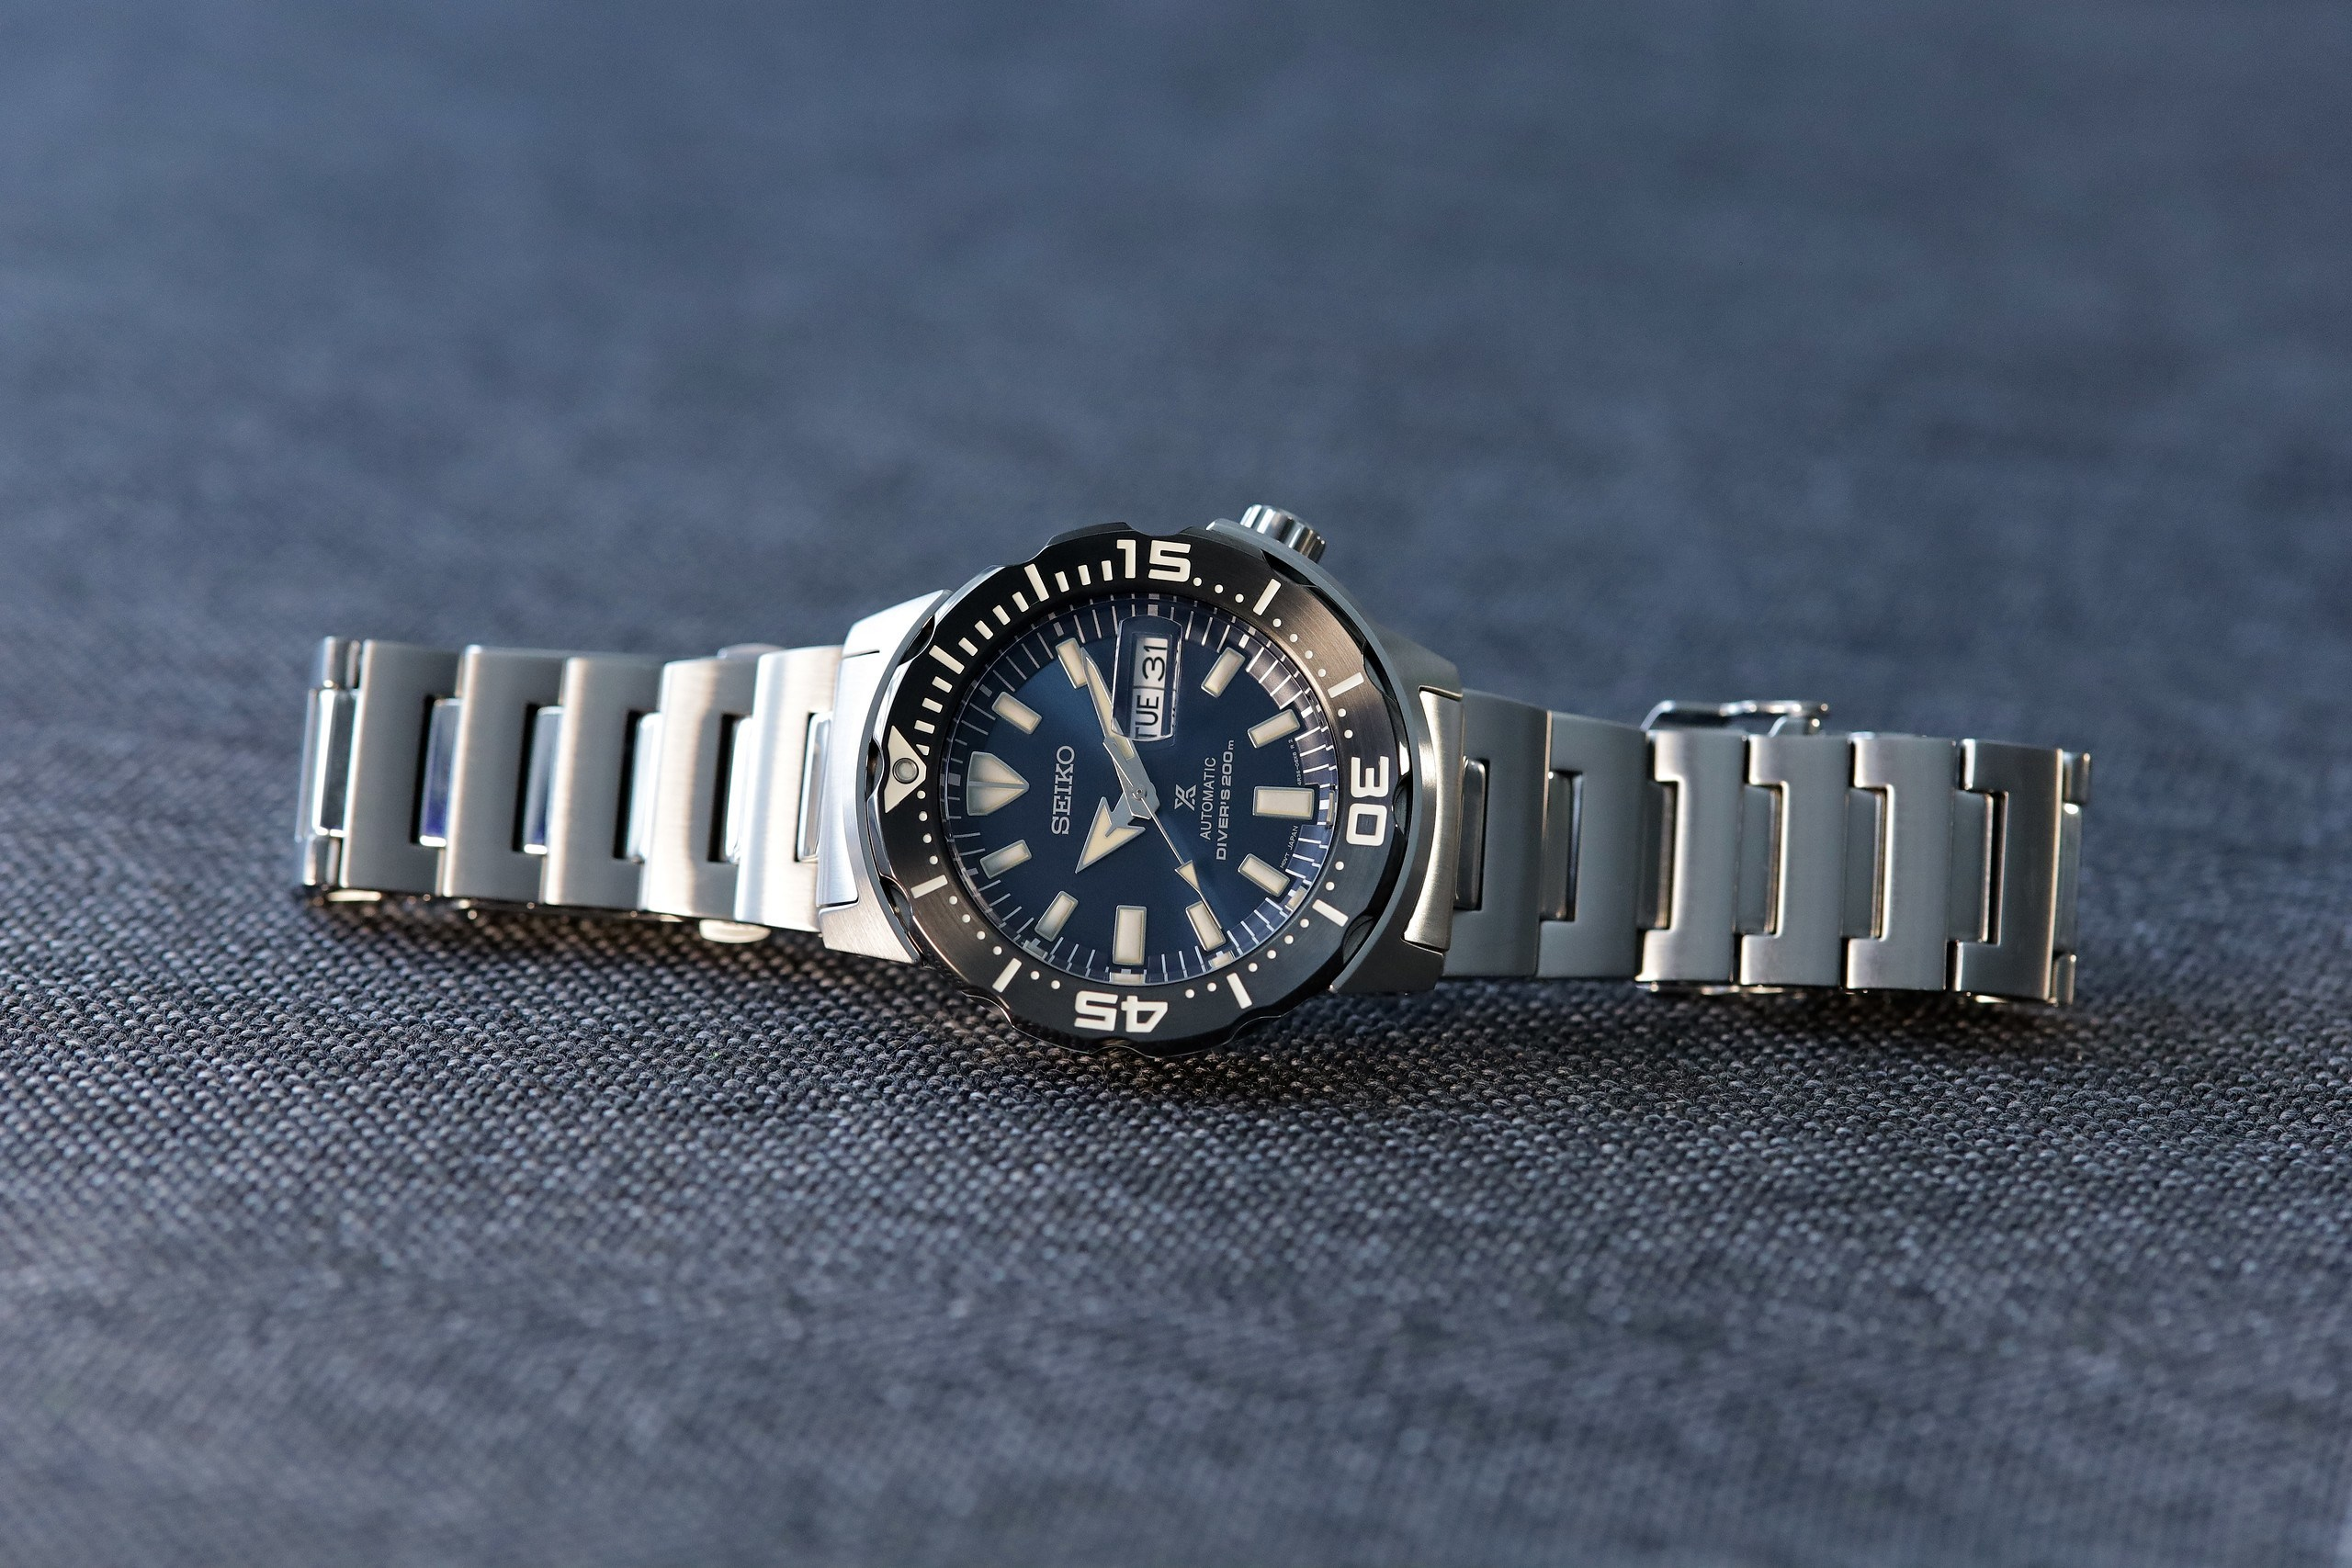 Seiko-Prospex-SRPD25-Monster-Automatic-Diver-full-side-view.jpg